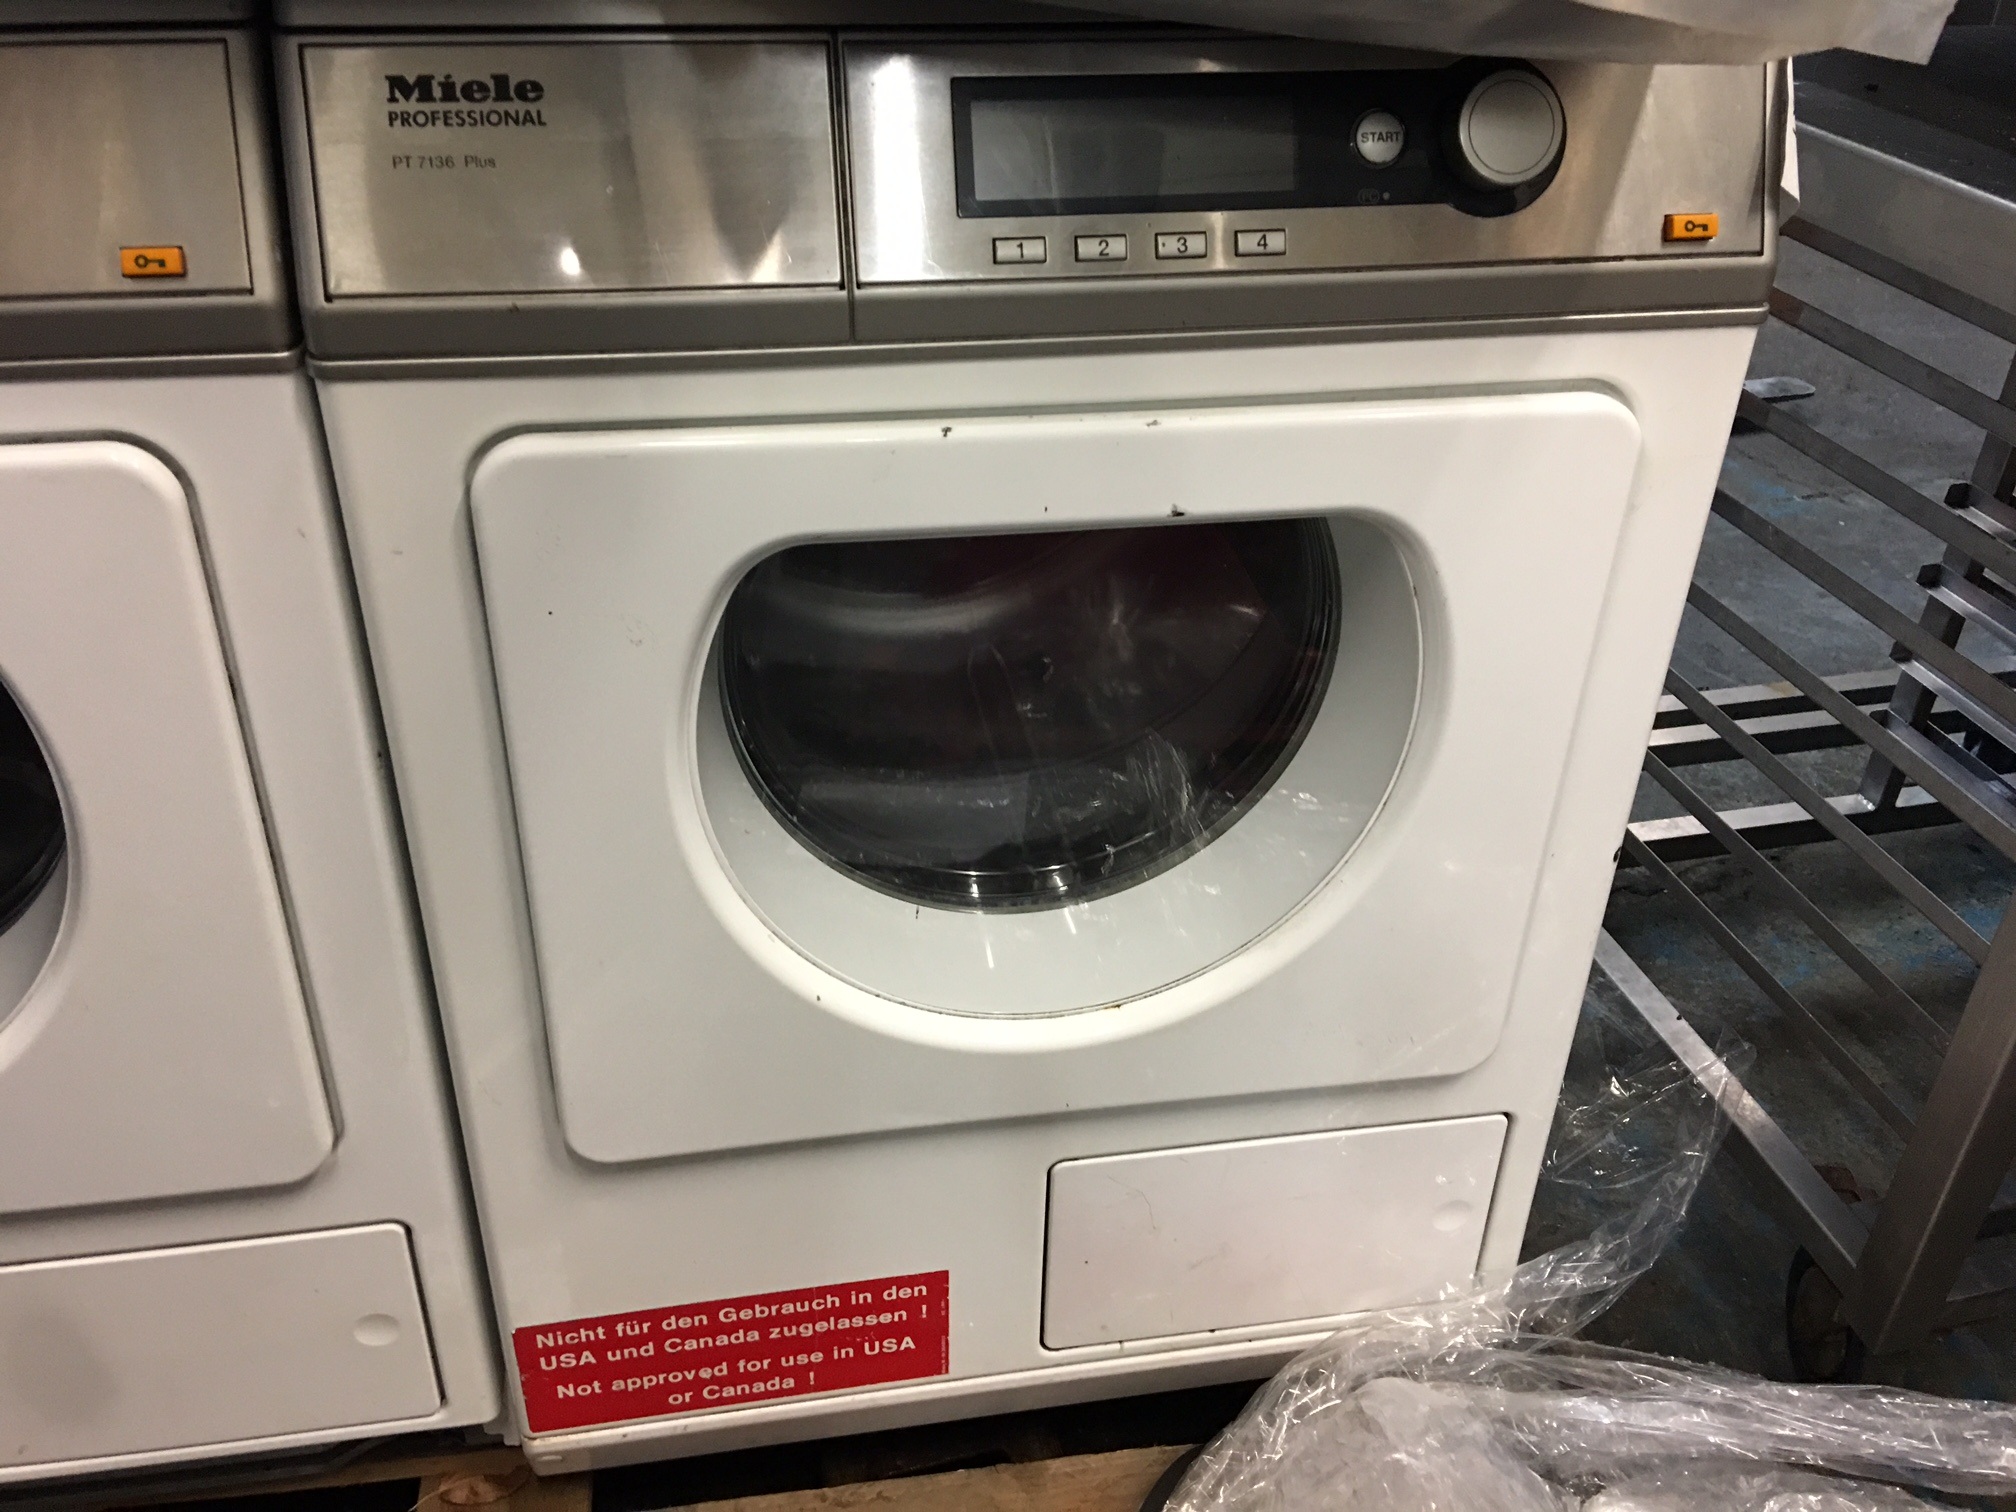 miele professional pt7136 vario tumble dryer 3 phase. Black Bedroom Furniture Sets. Home Design Ideas